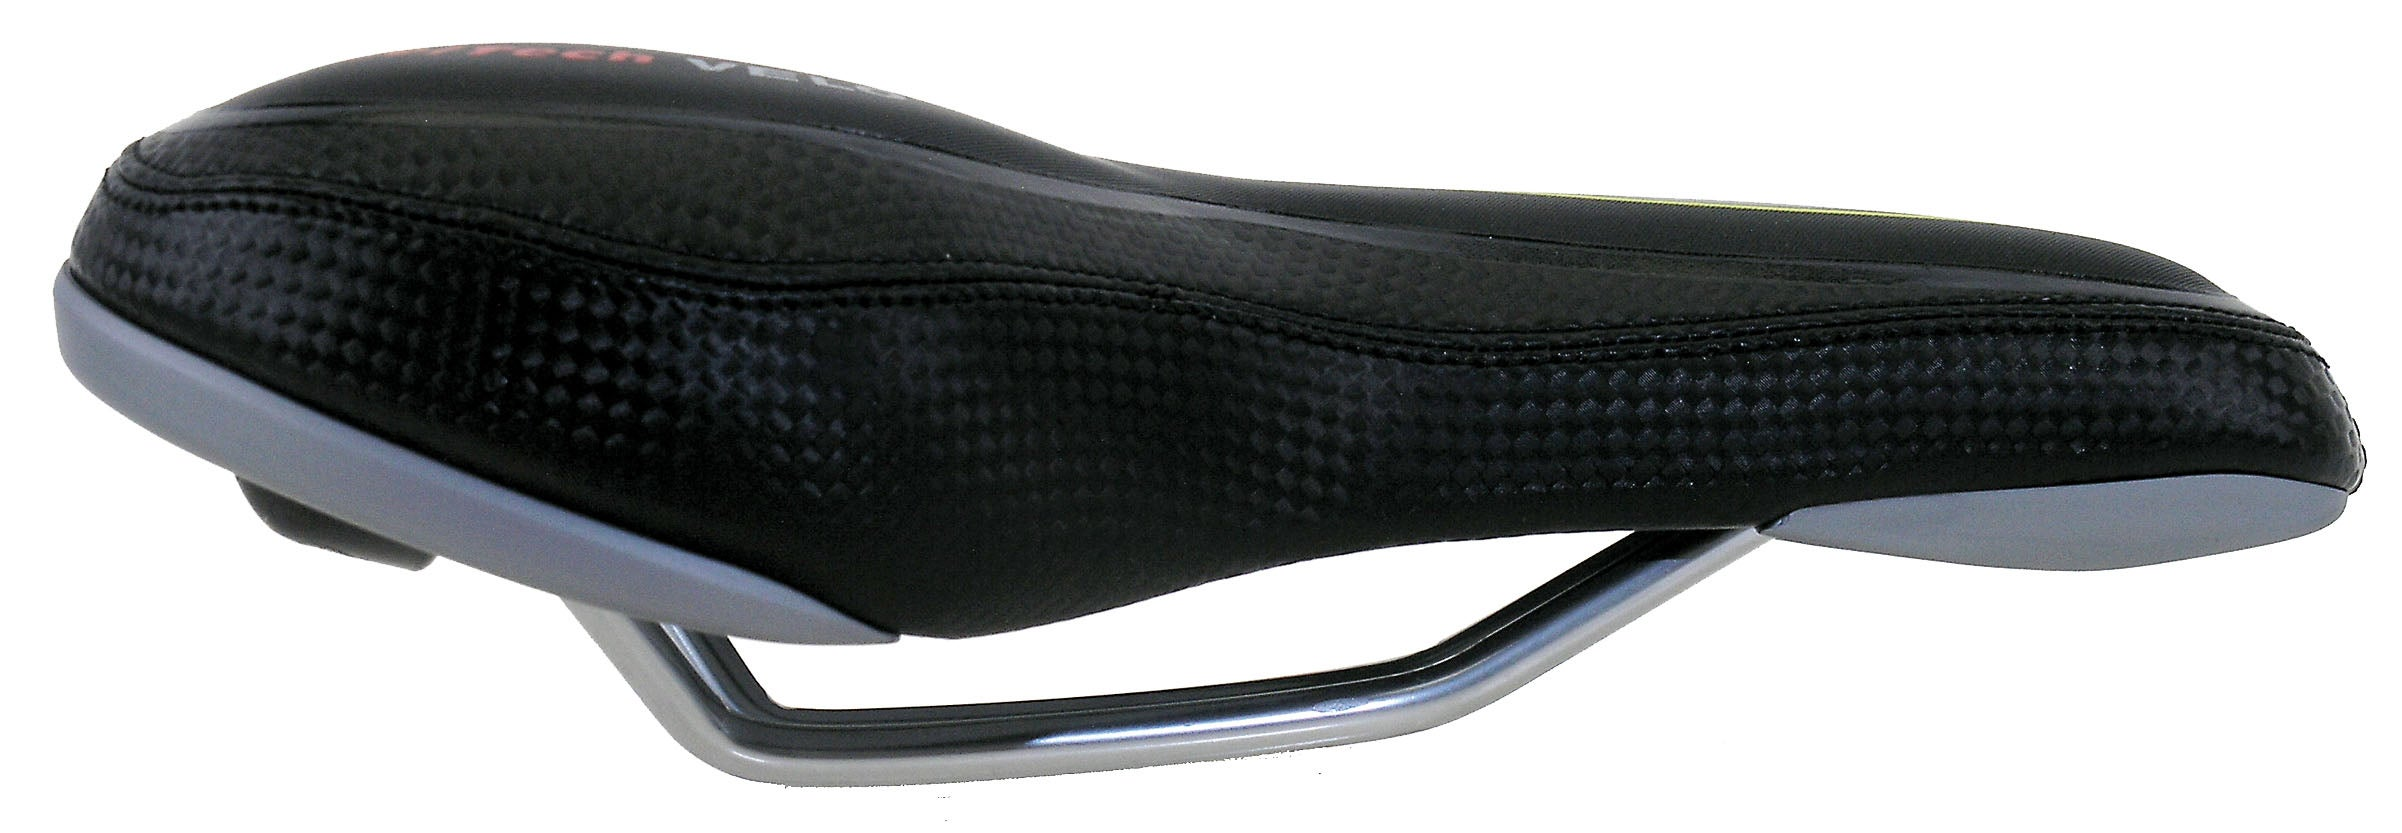 Velo Out-look Gel Bicycle Saddle - Thumbnail 1